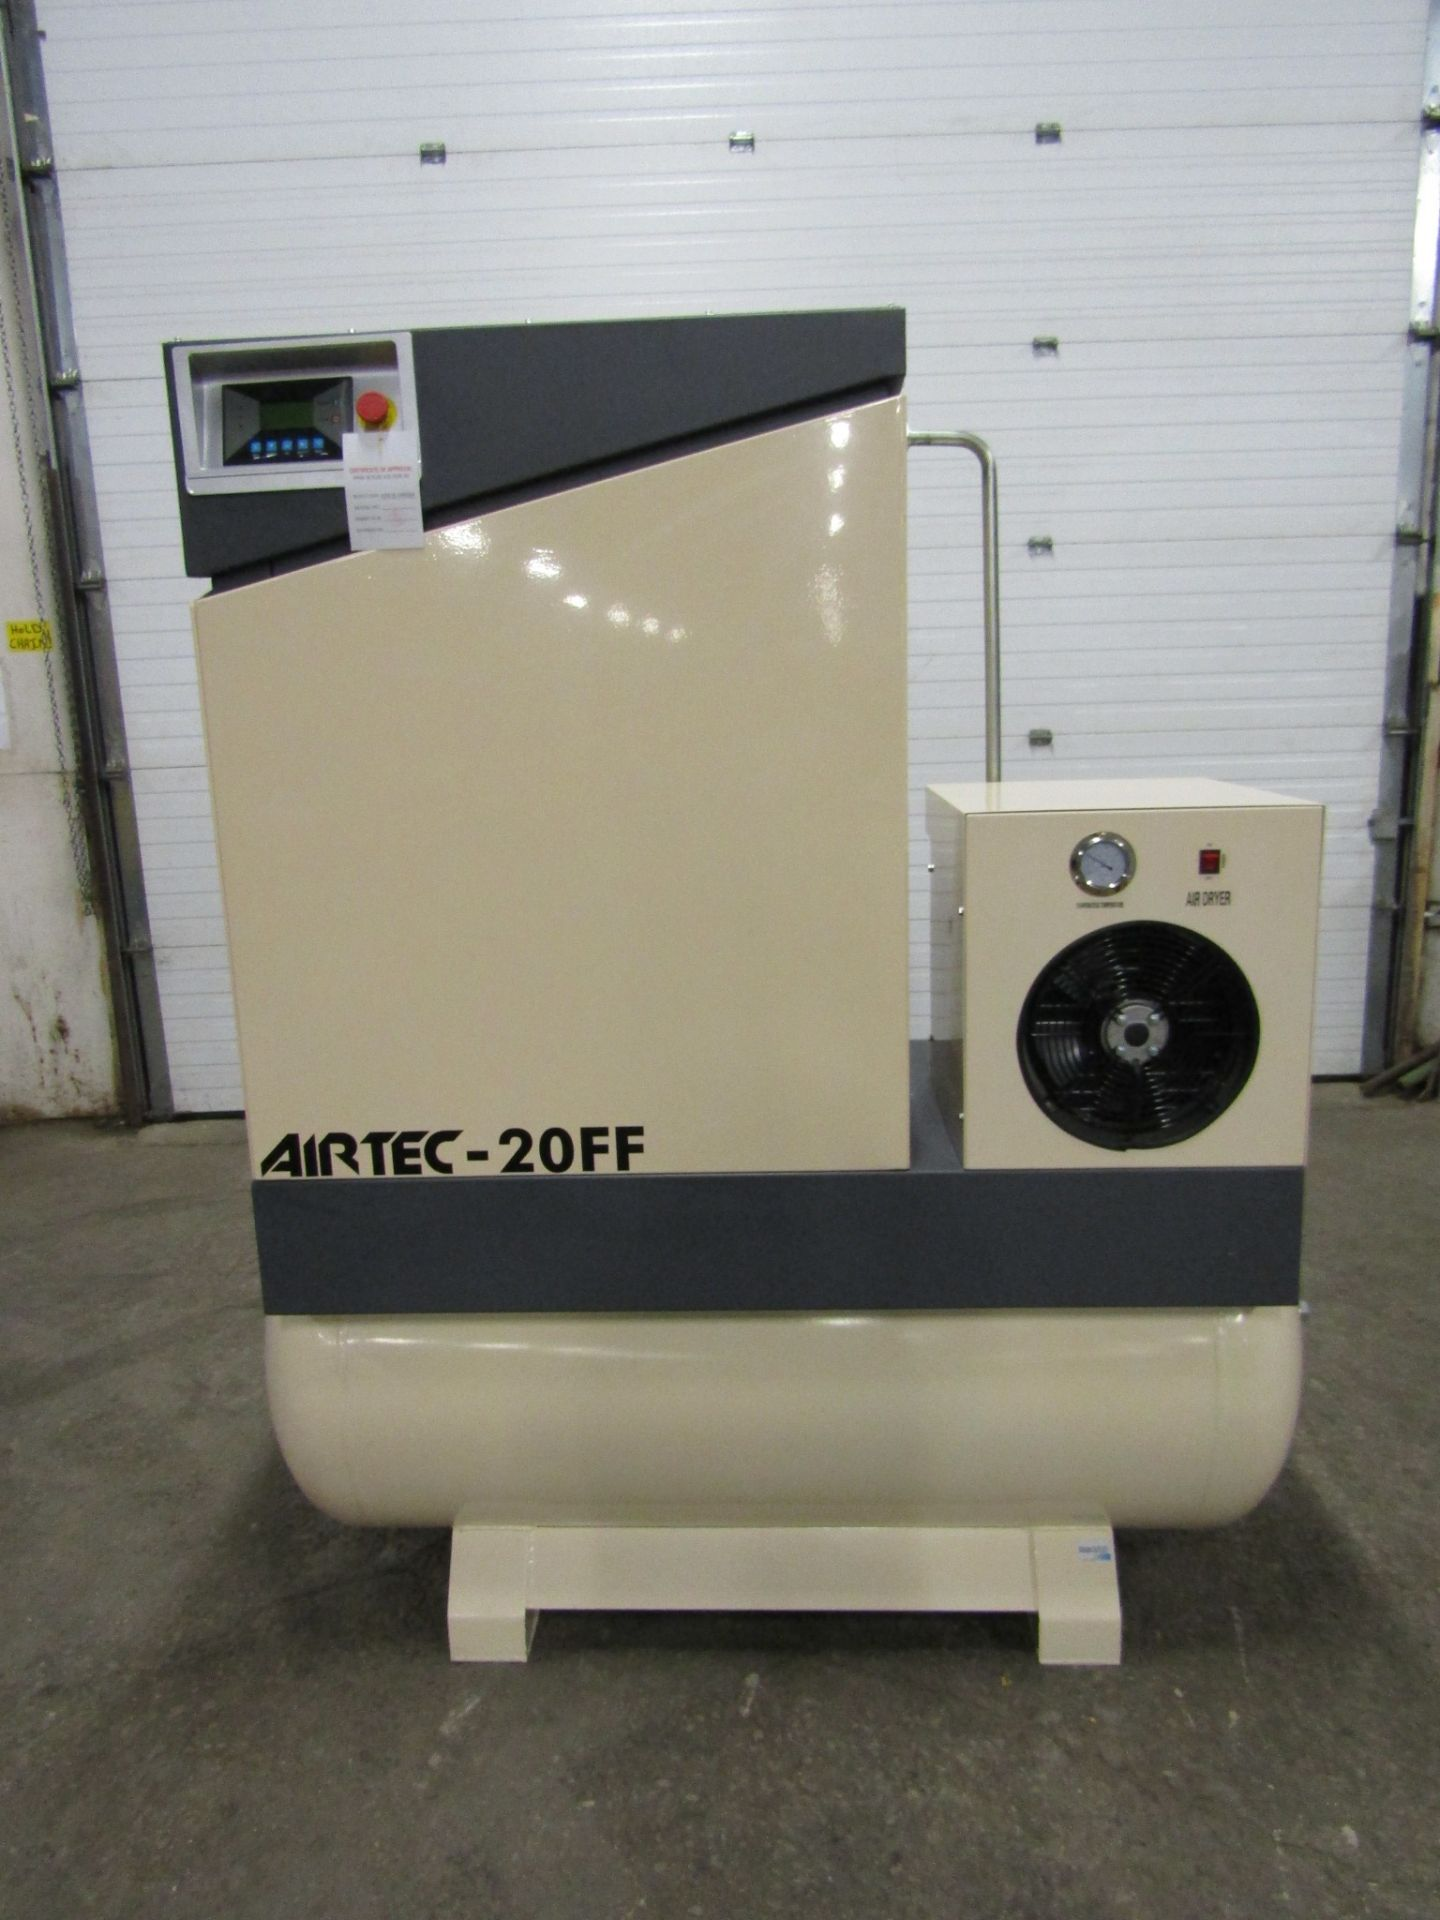 Airtec model 20FF - 20HP Air Compressor with built on DRYER - MINT UNUSED COMPRESSOR with 125 Gallon